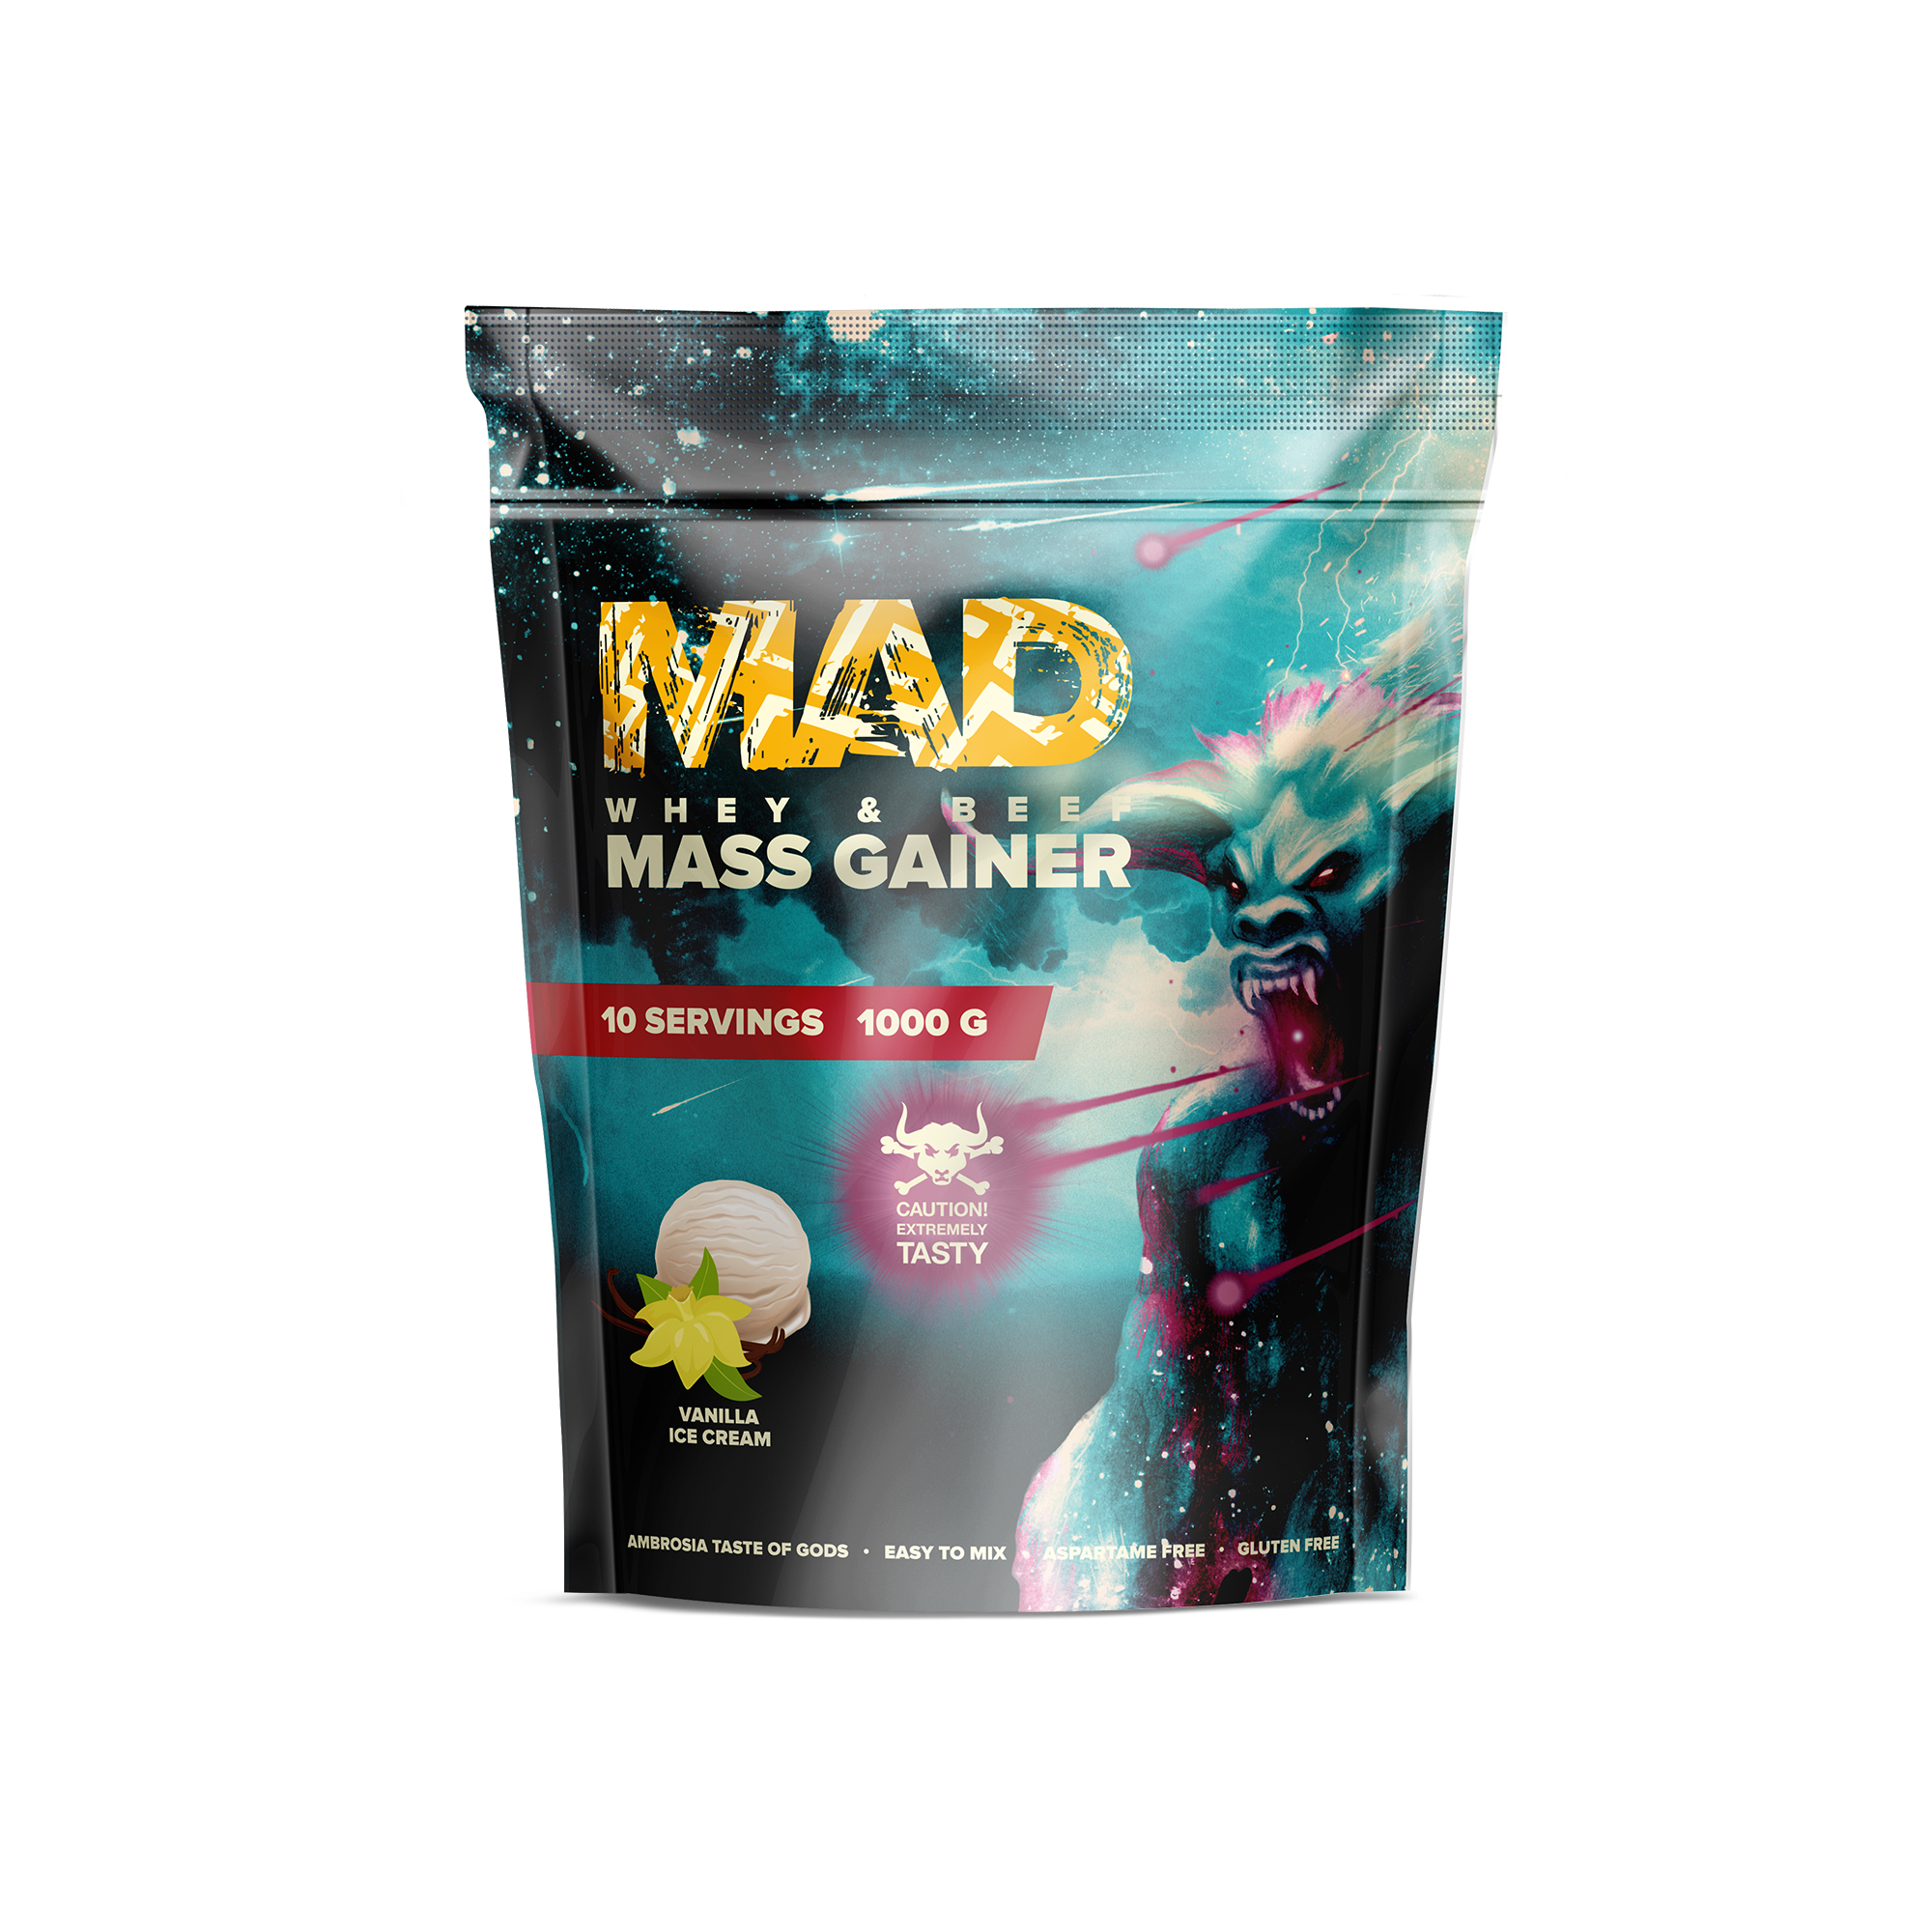 MAD WHEY & BEEF MASS GAINER 1000g/10serv Vanilla